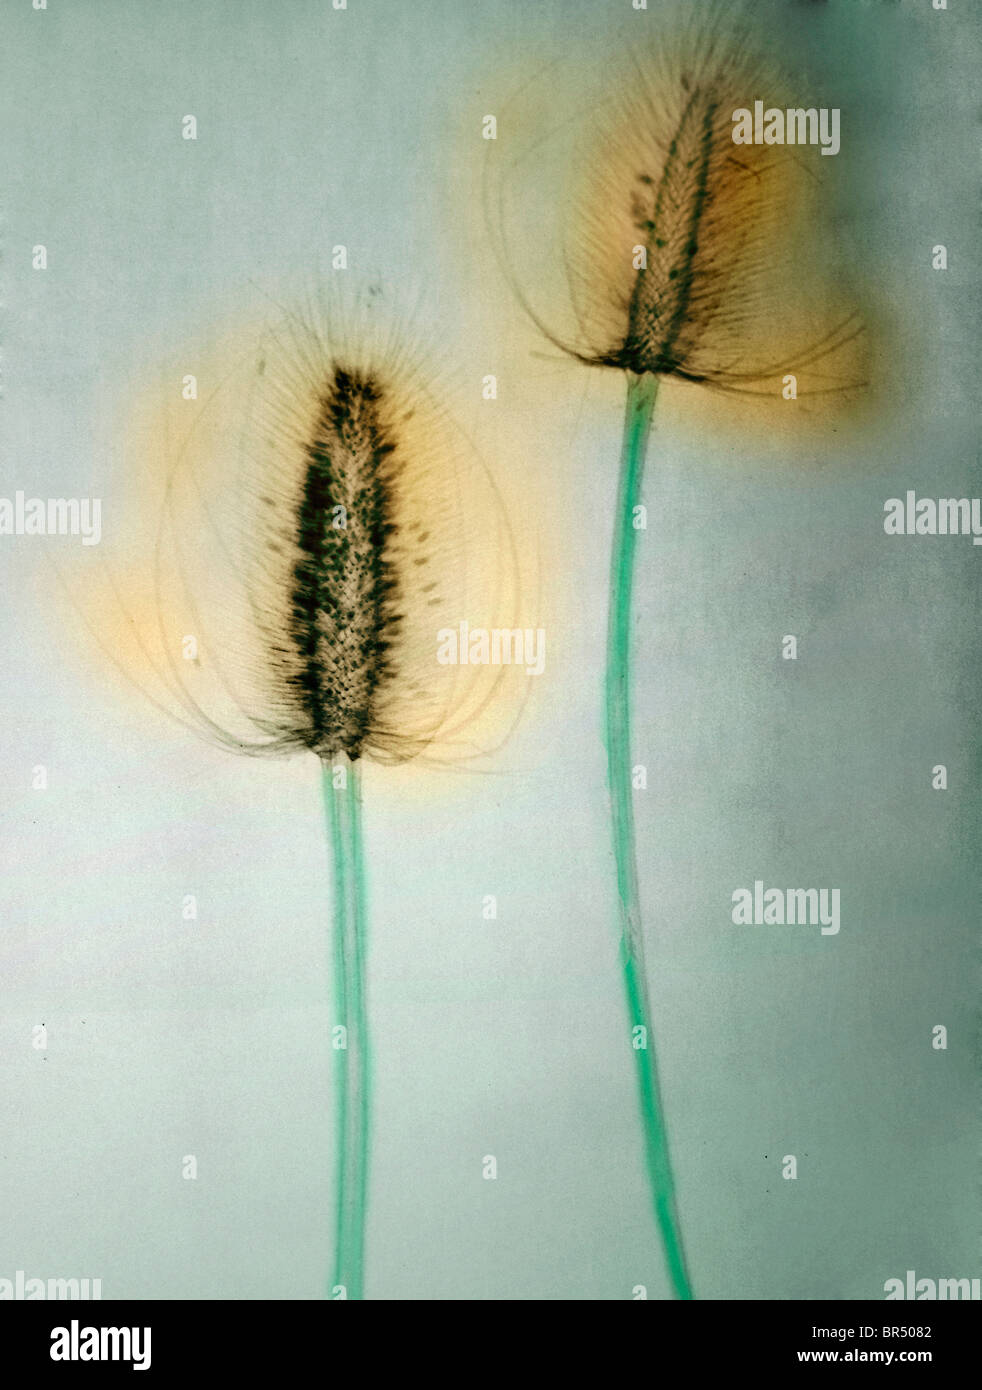 x-ray of teasel flowers, colorized x-ray of a teasel flower - Stock Image